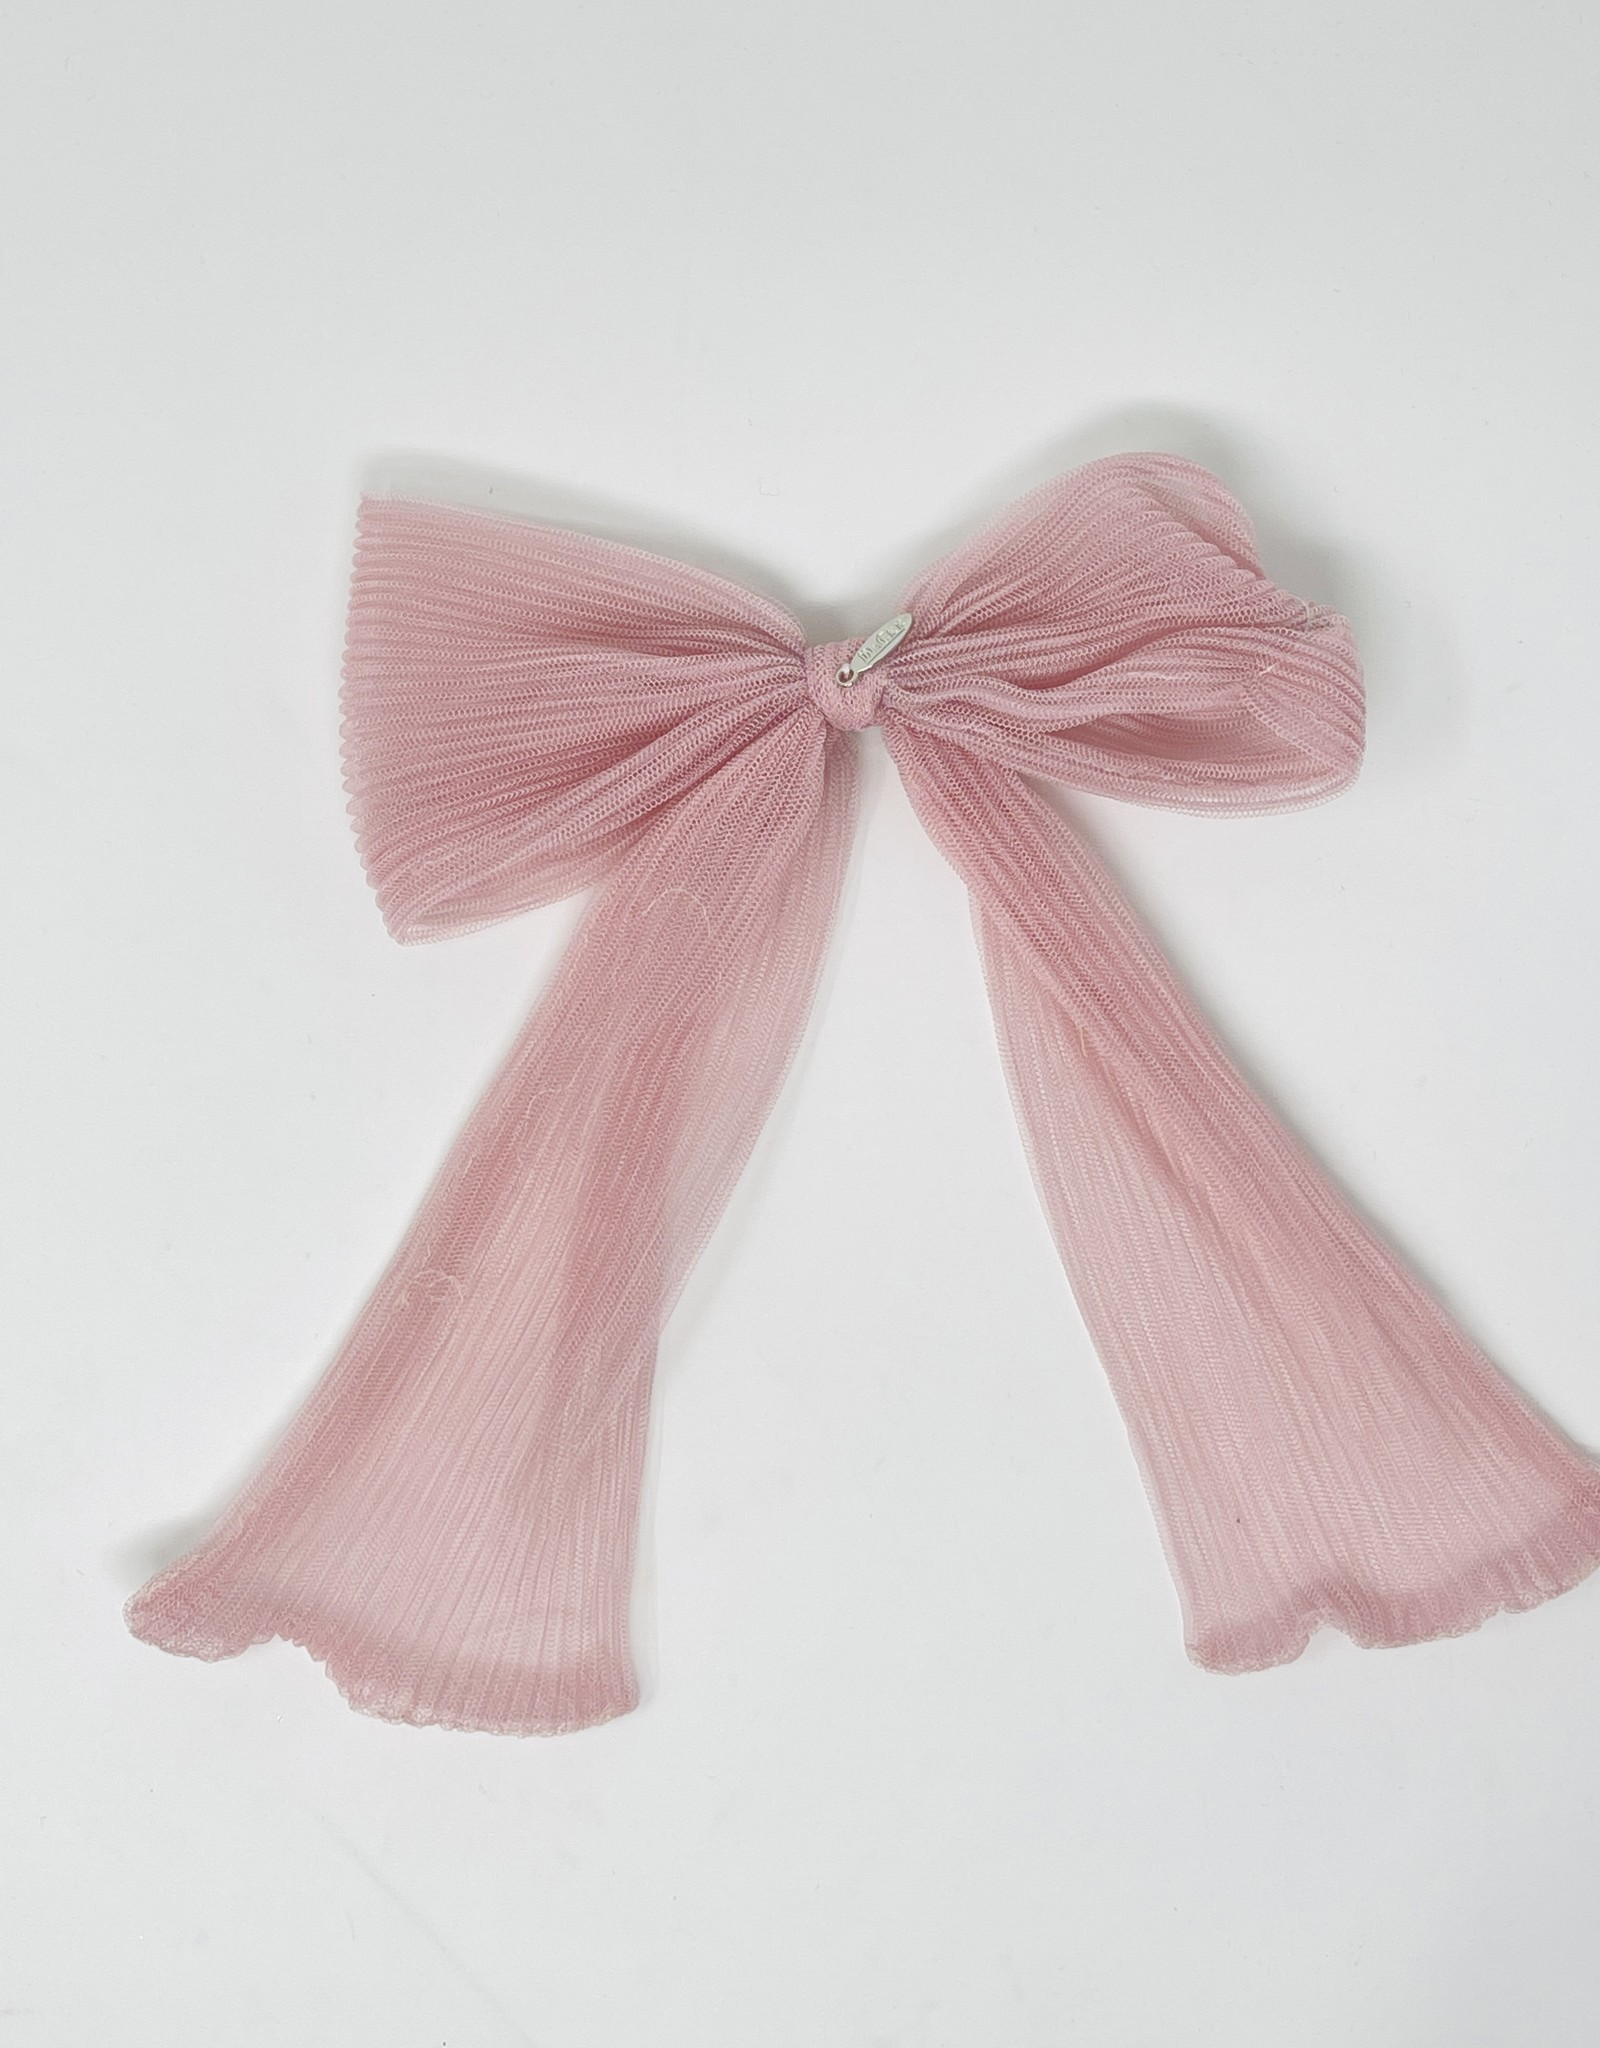 Dacee Dacee Accordion Pleated Tulle Bow Clip